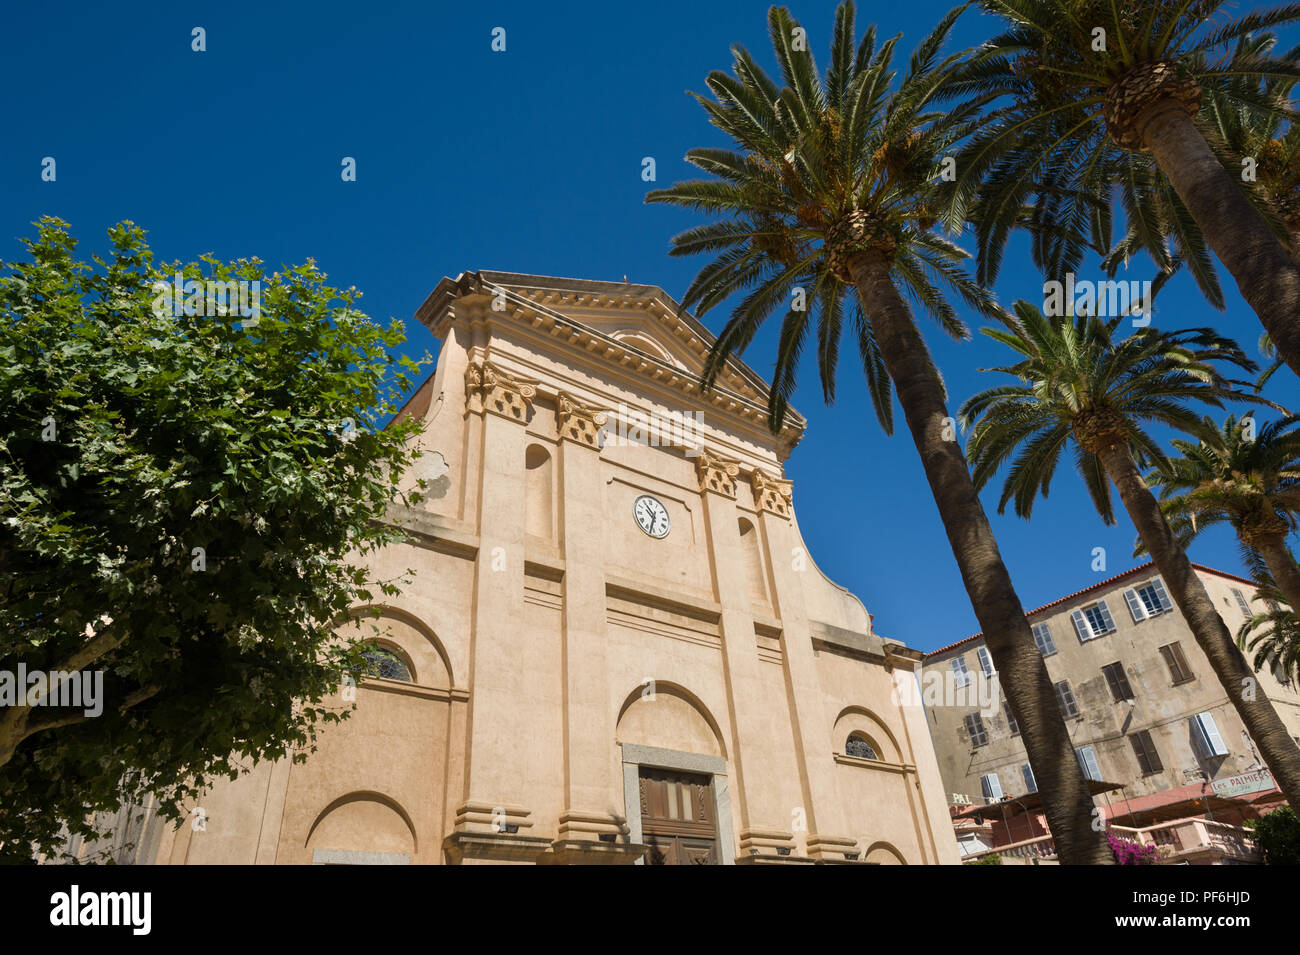 The Church of the Immaculate Conception, L'Île-Rousse, Corsica, France, Europe - Stock Image